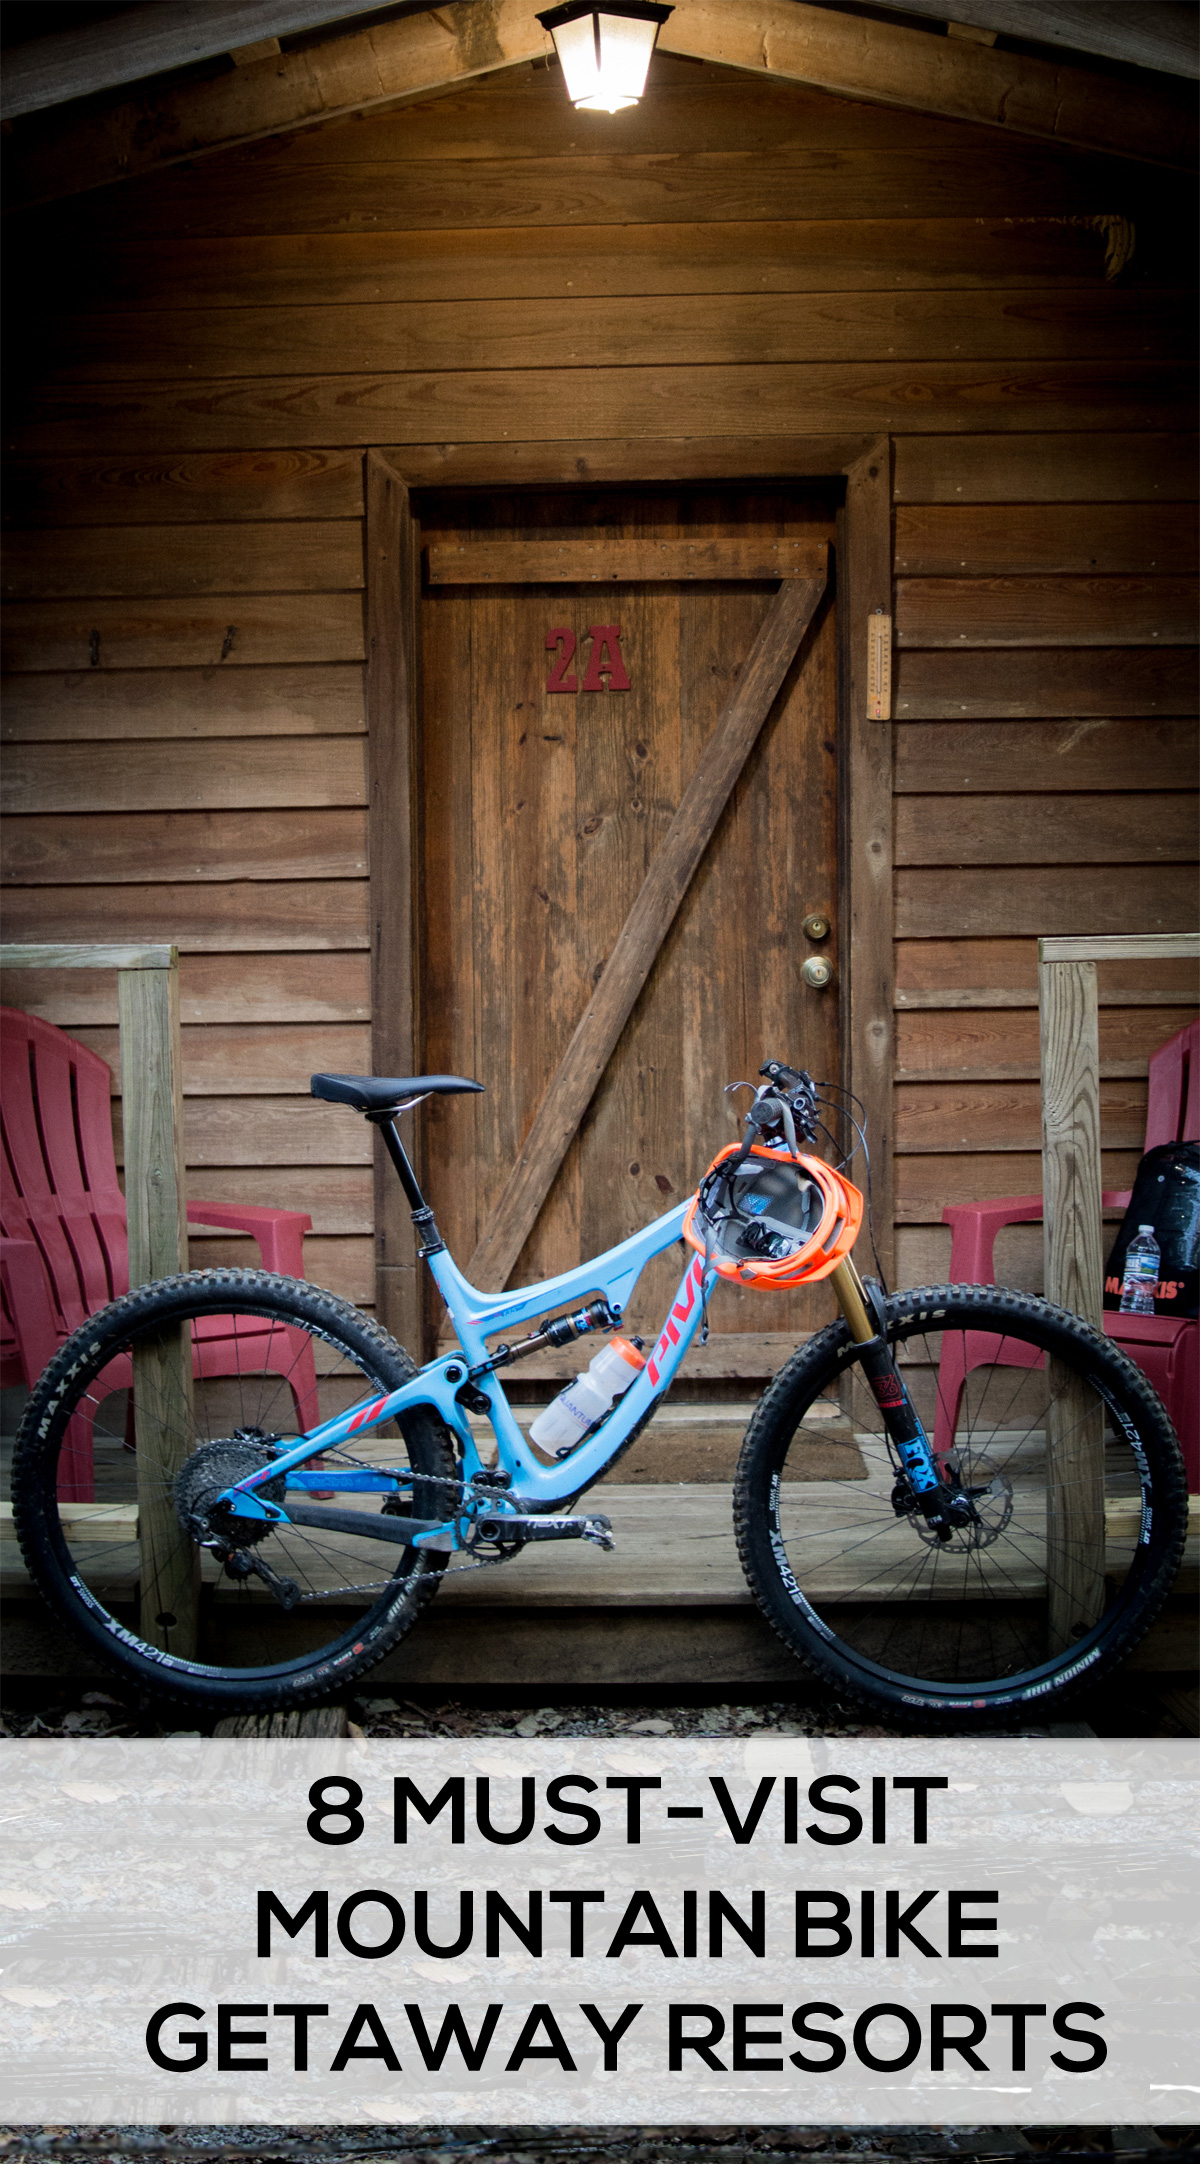 8 must visit mountain bike getaway resorts mulberry gap